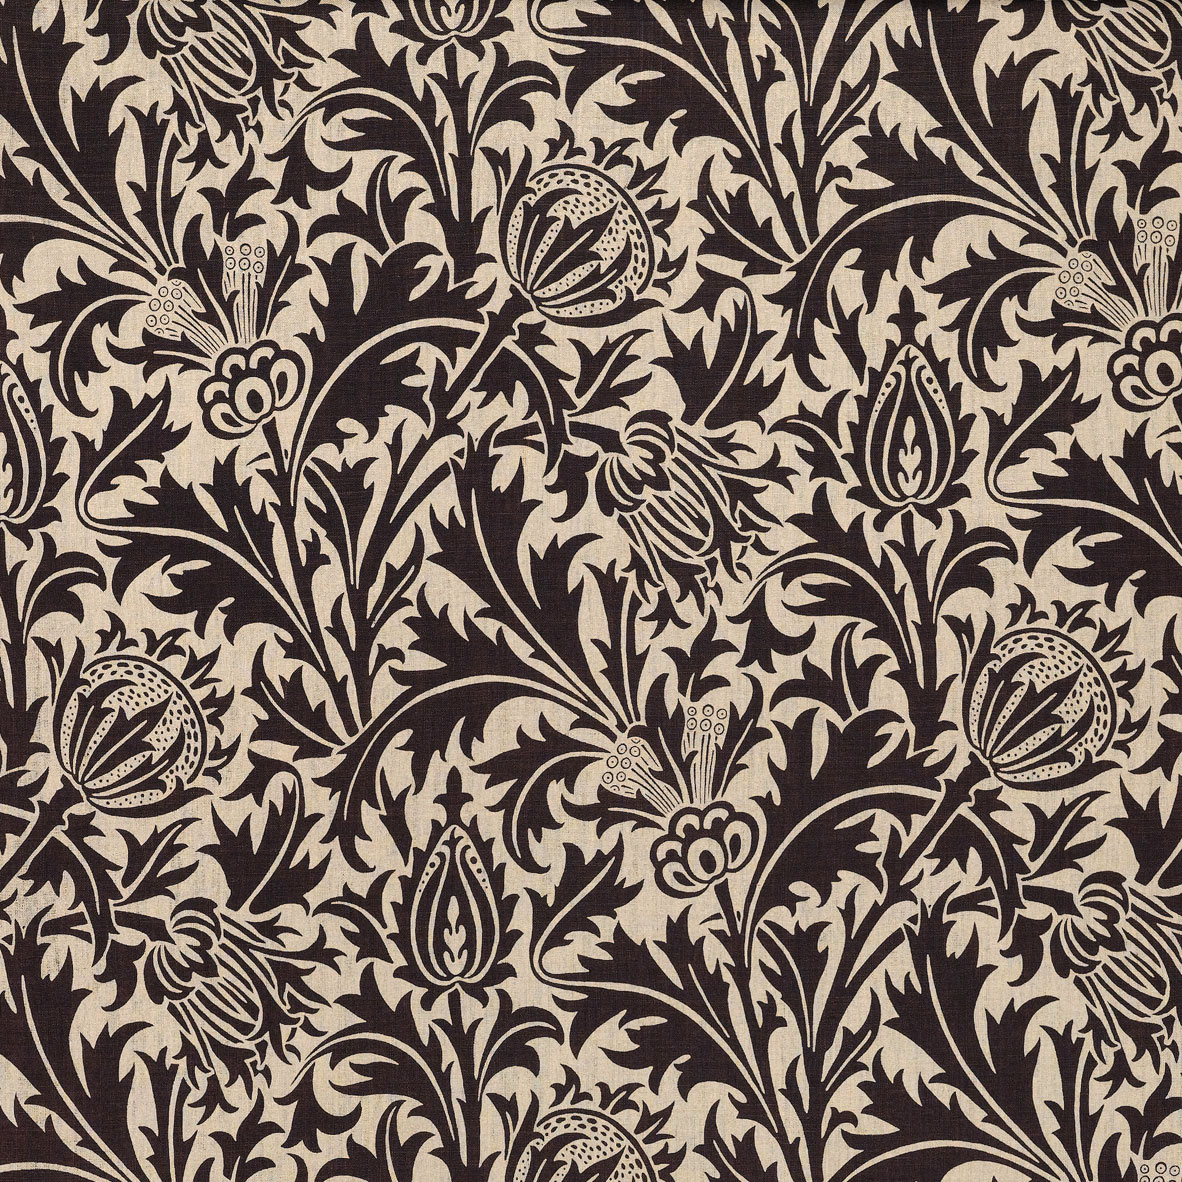 Englische tapetenmuster william morris stil tapeten online for Ausgefallene tapeten muster